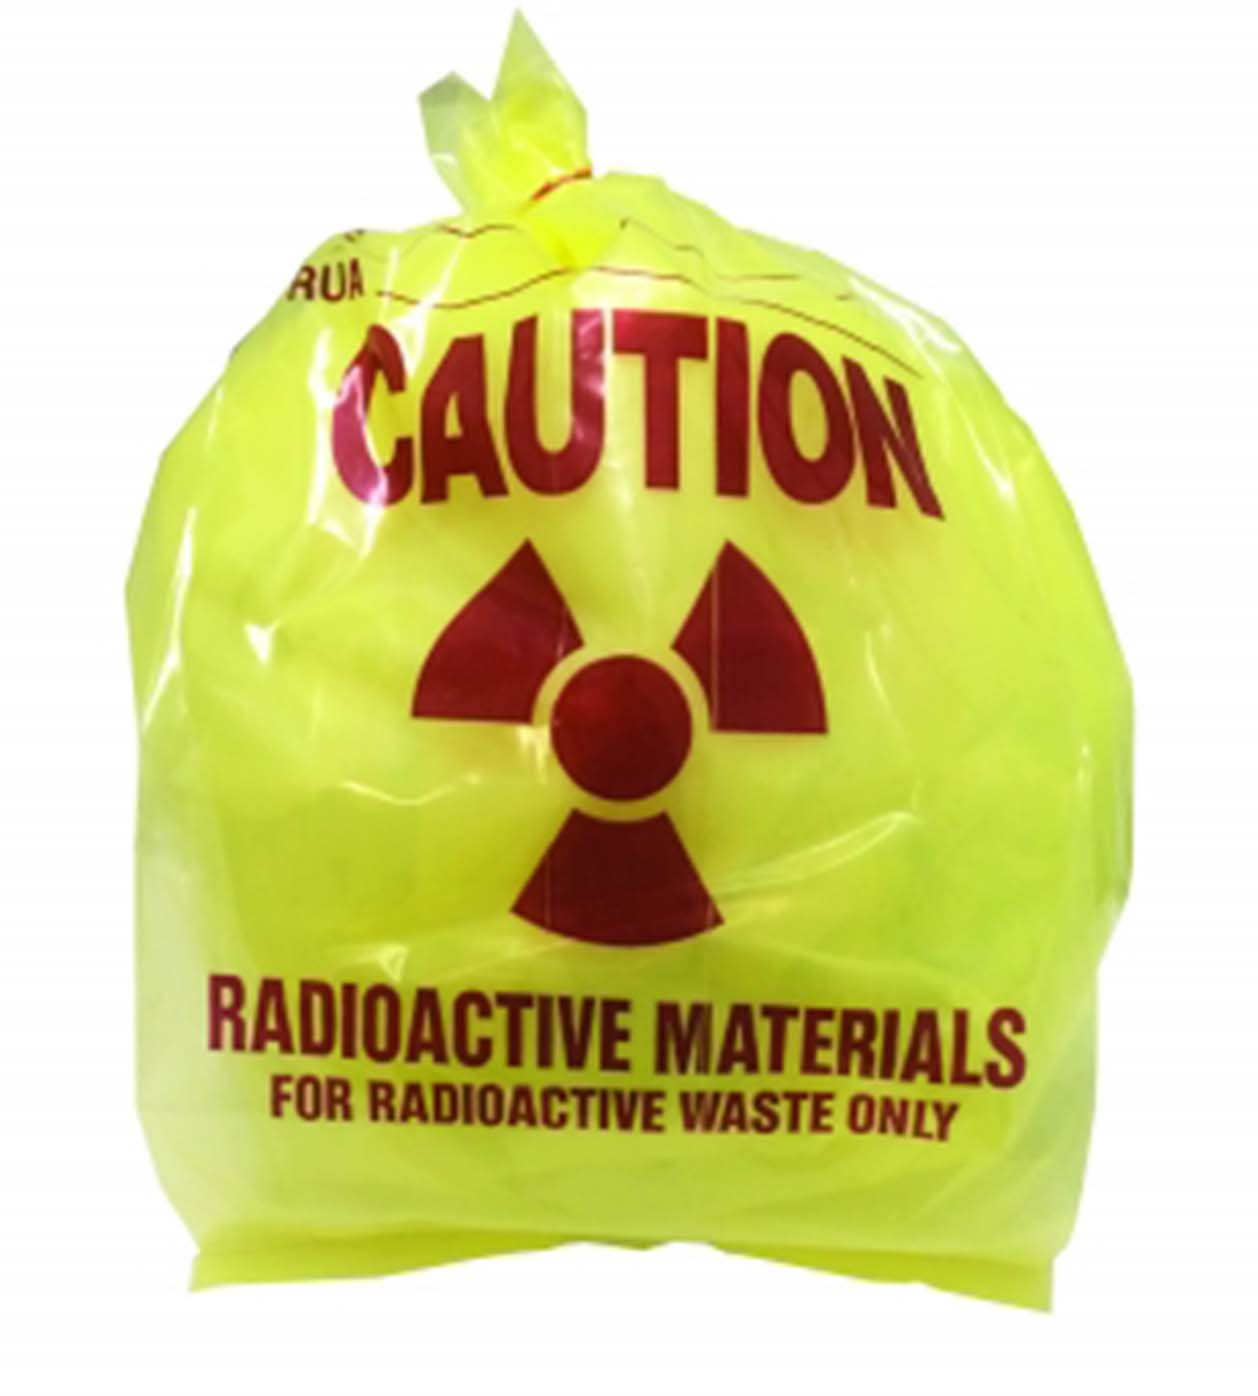 Radioactive Waste Disposal Bags, 3 Mil Thick, 11 x 11 x 30 Inches, Yellow Tint, Pre-Printed with Caution Message, 100 per Package